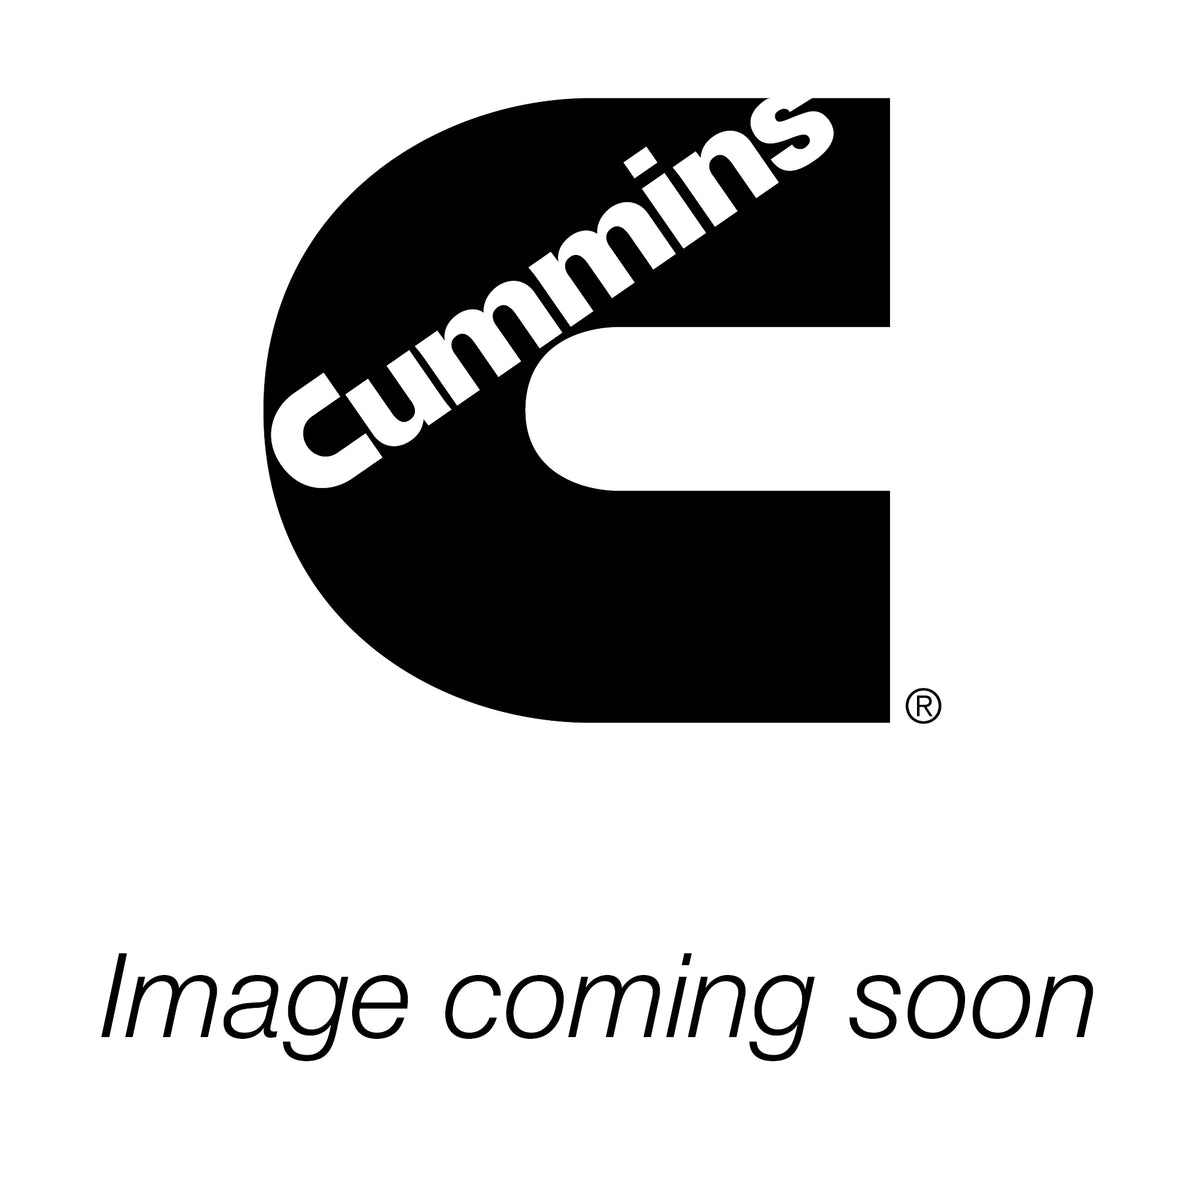 Cummins Onan Generator Oil Filter - 186-6025